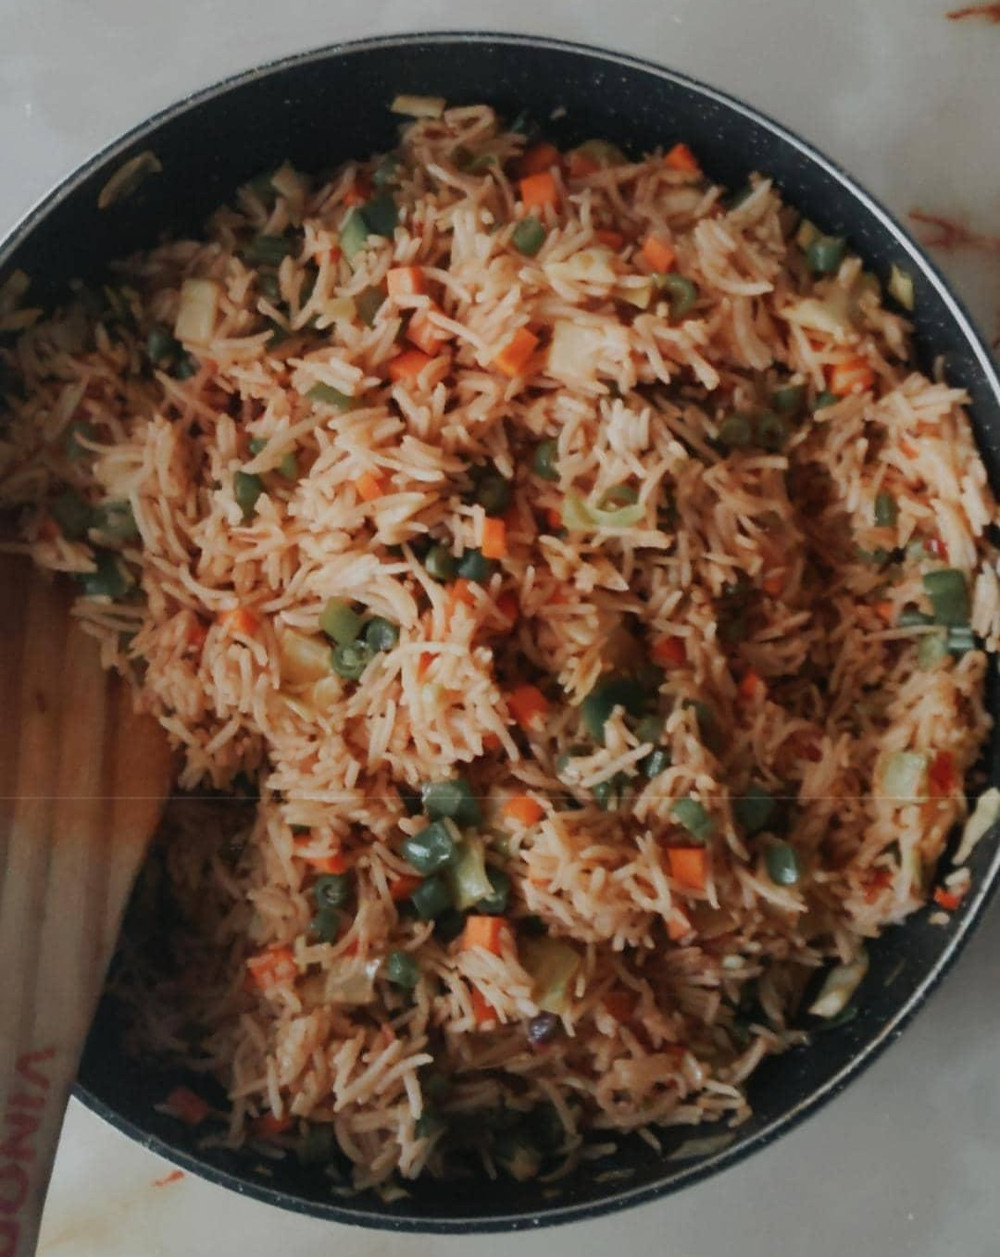 Congratulations! You made your rice, if it looks like this :)